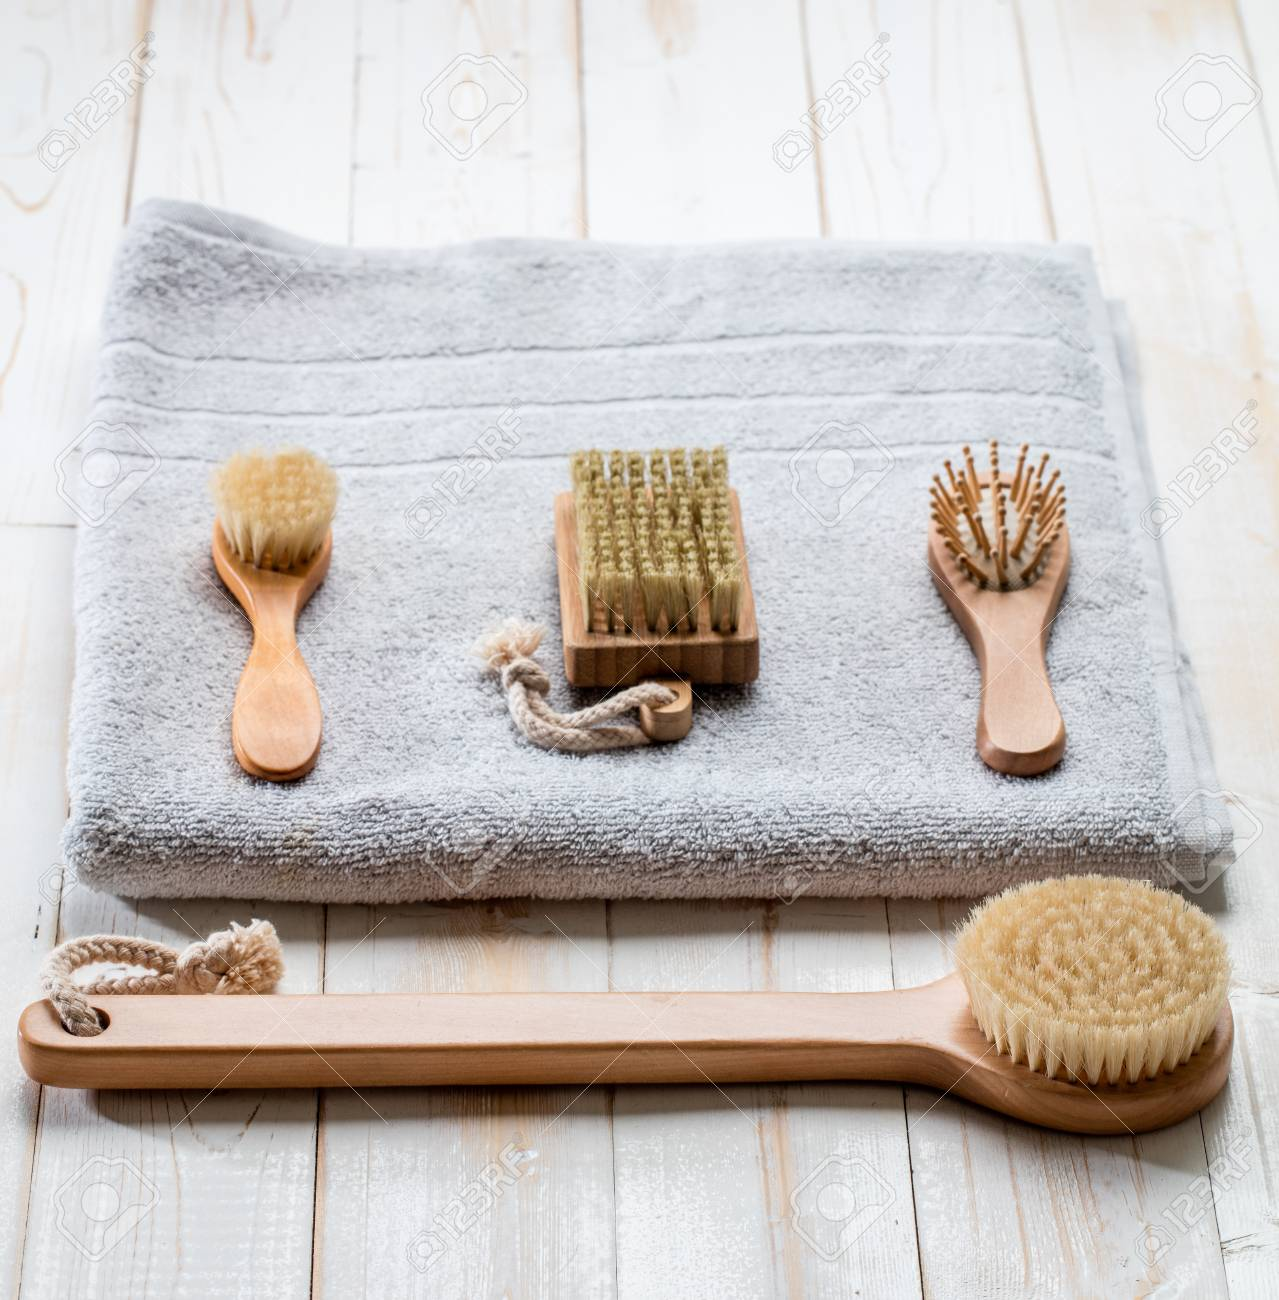 1b742f4bccc eco-friendly hygiene still life with dry brushing accessories and natural  body care products for